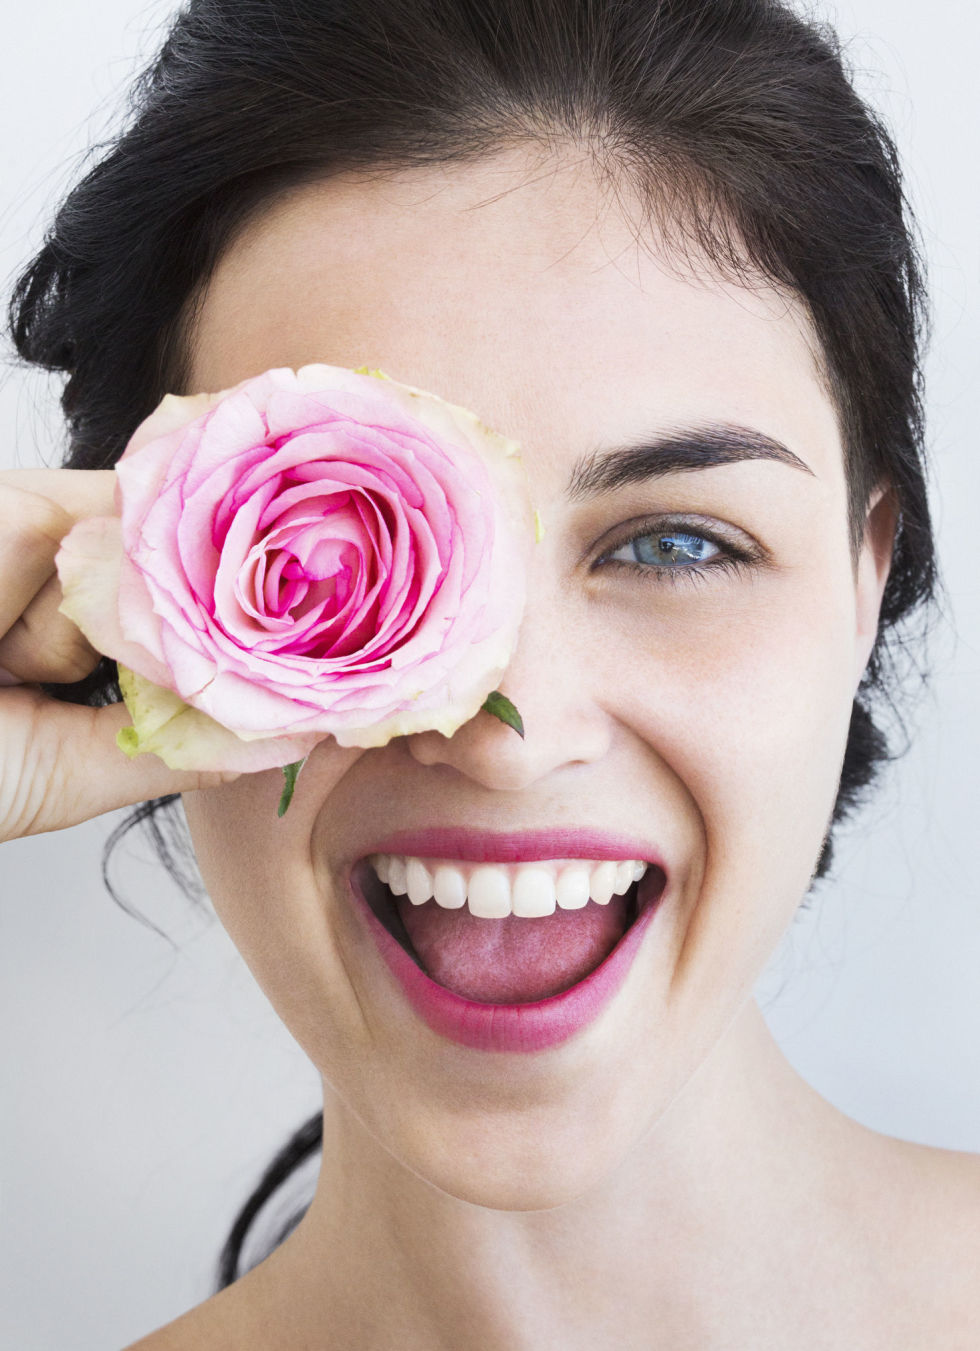 how to be happier - 20 mood boosters to get happy in an instant